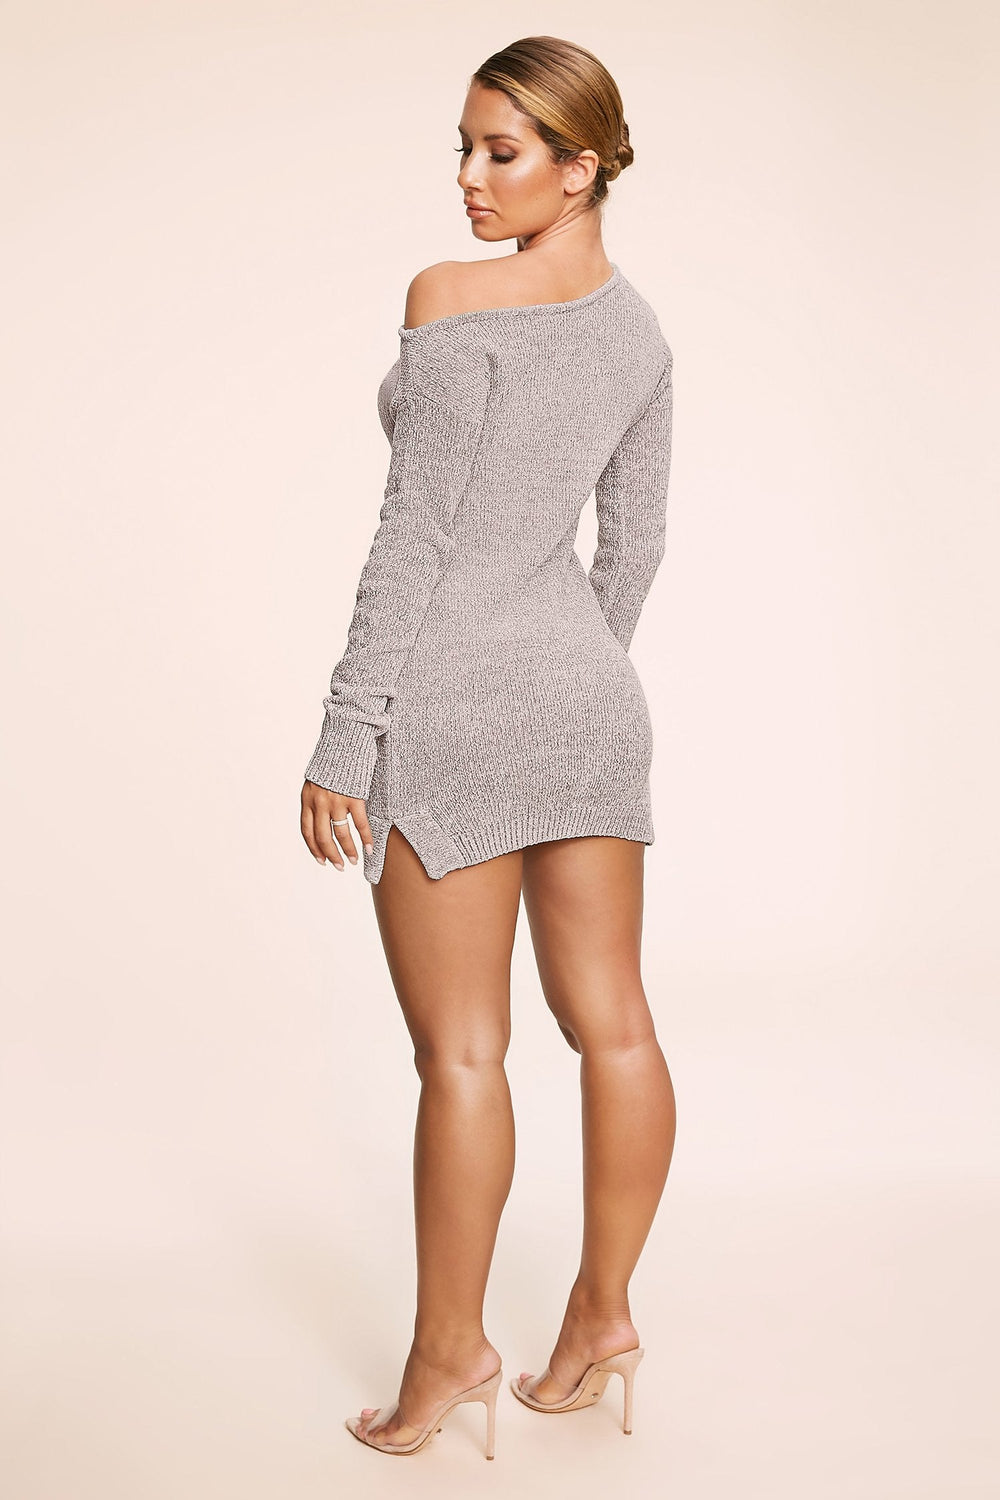 Alegra Chenille Off The Shoulder Dress - Grey - MESHKI ?id=11779859710027